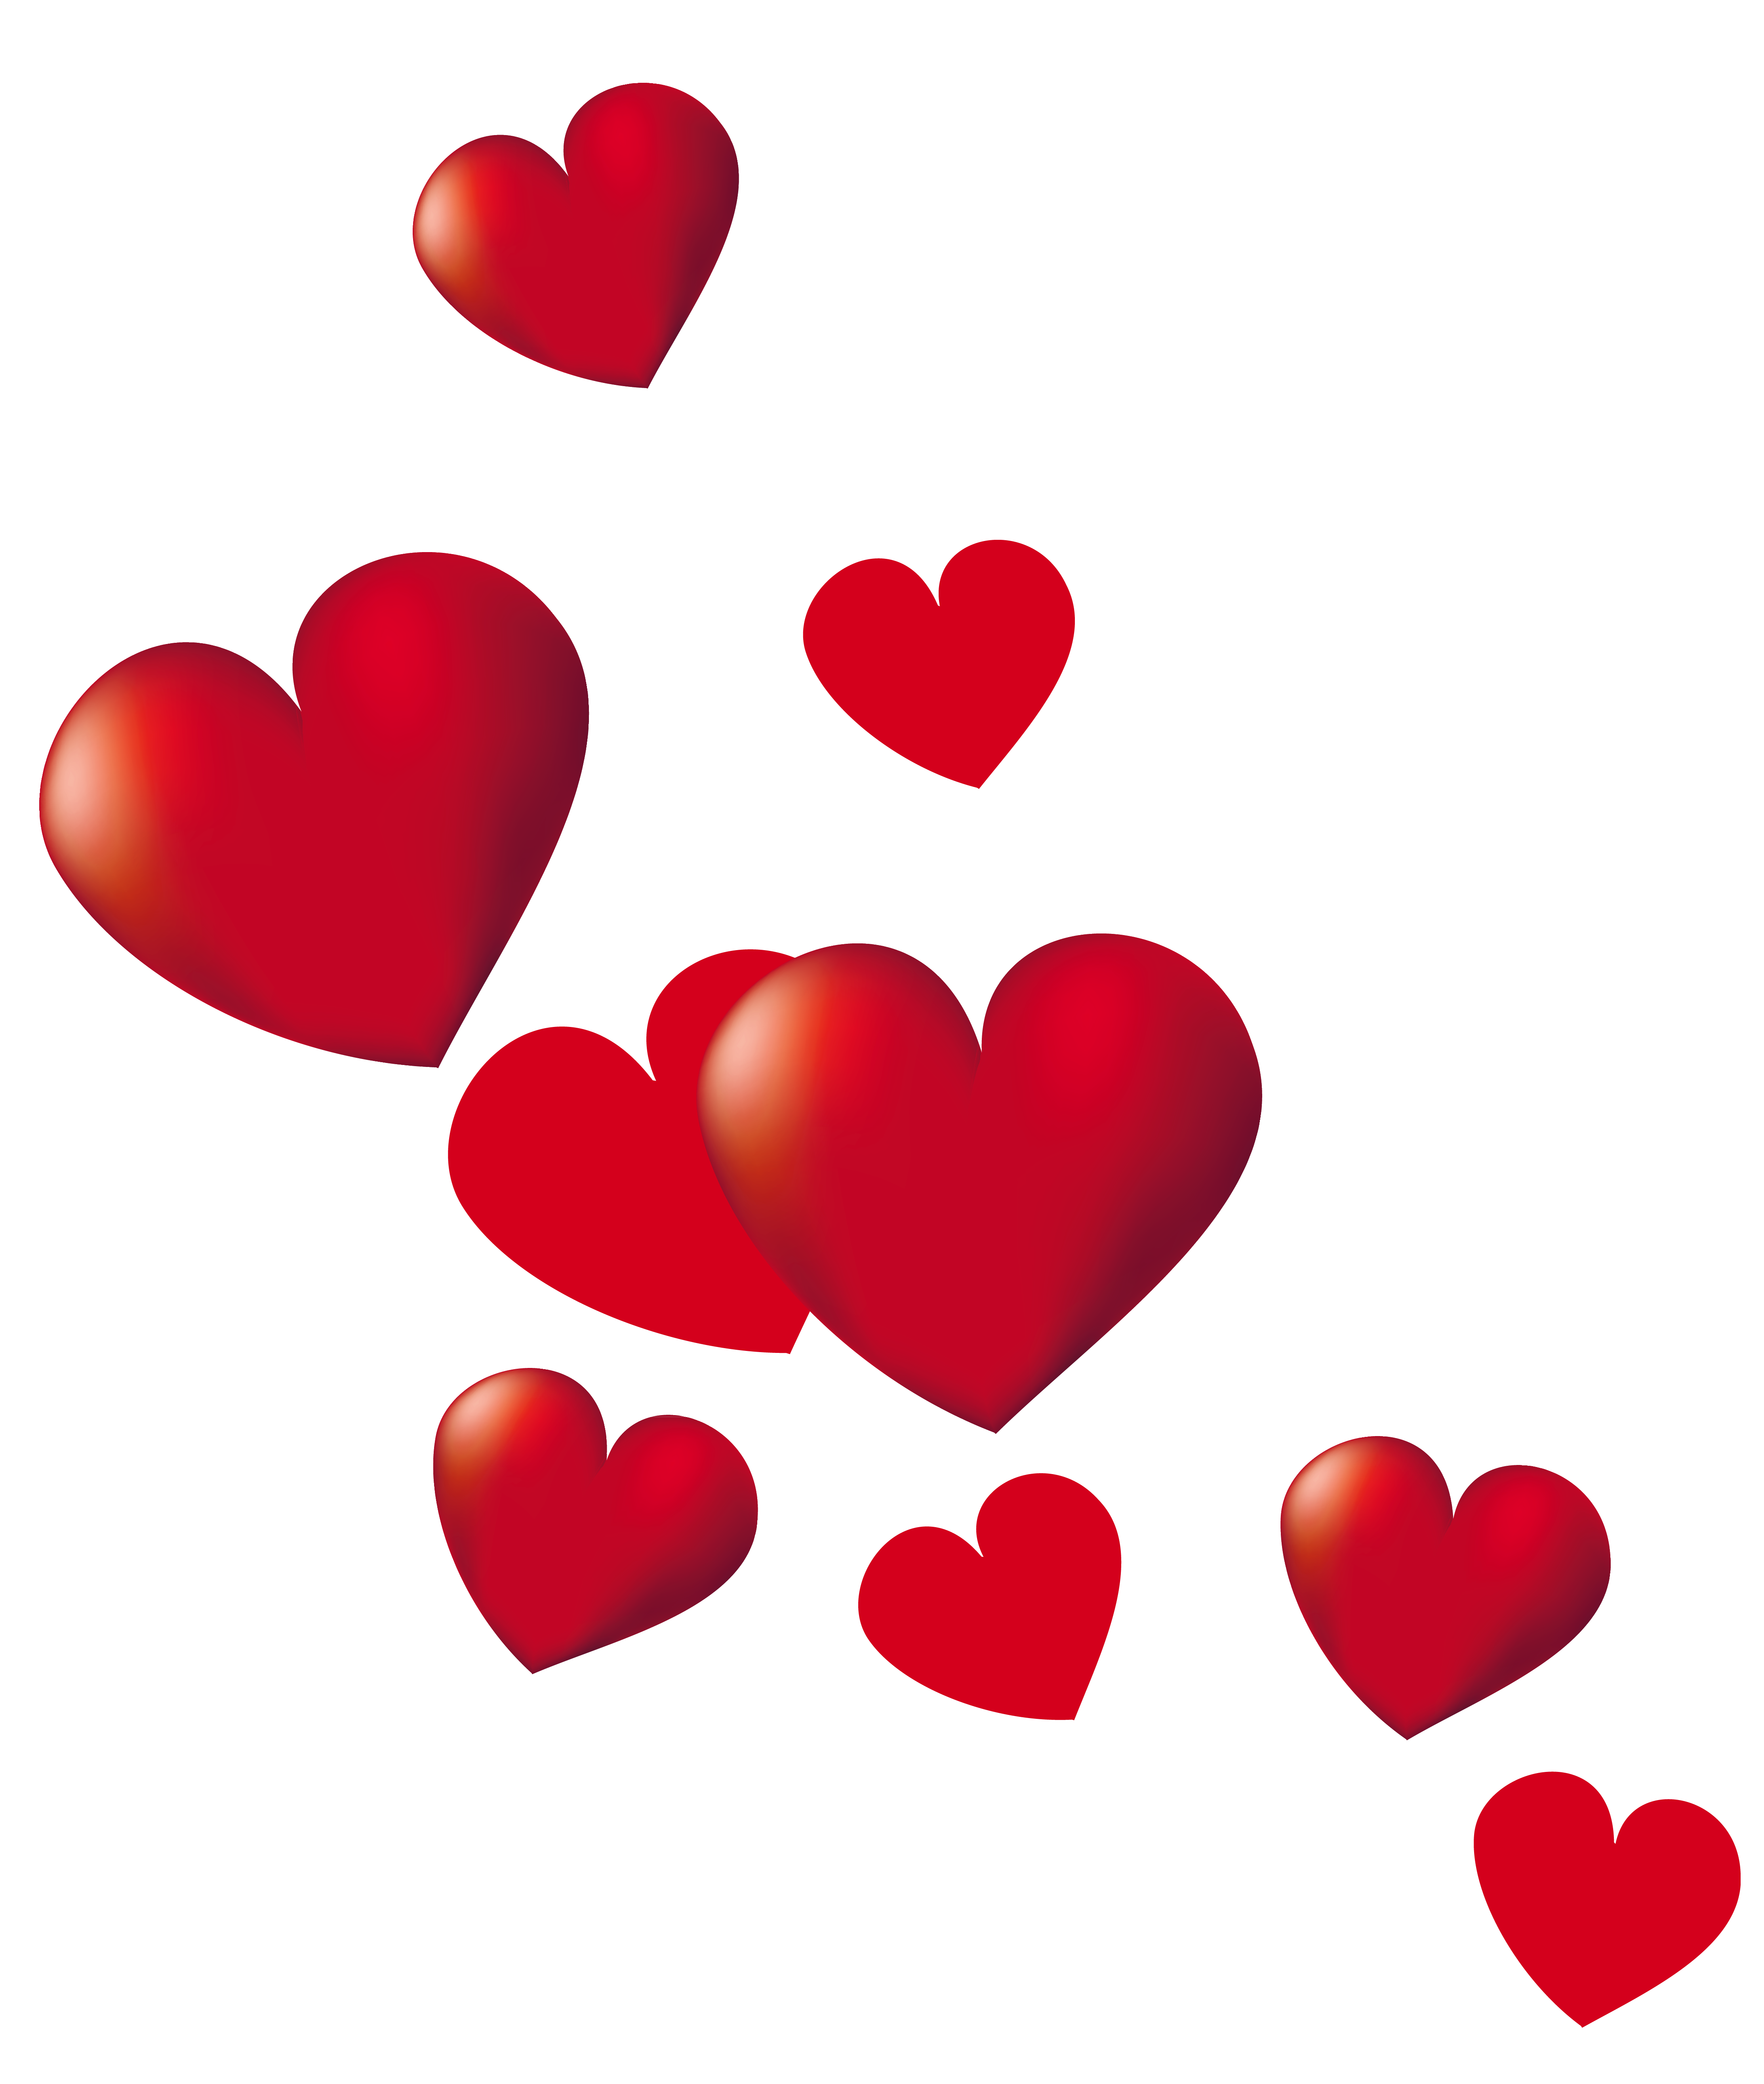 Hearts clip art png.  image free download